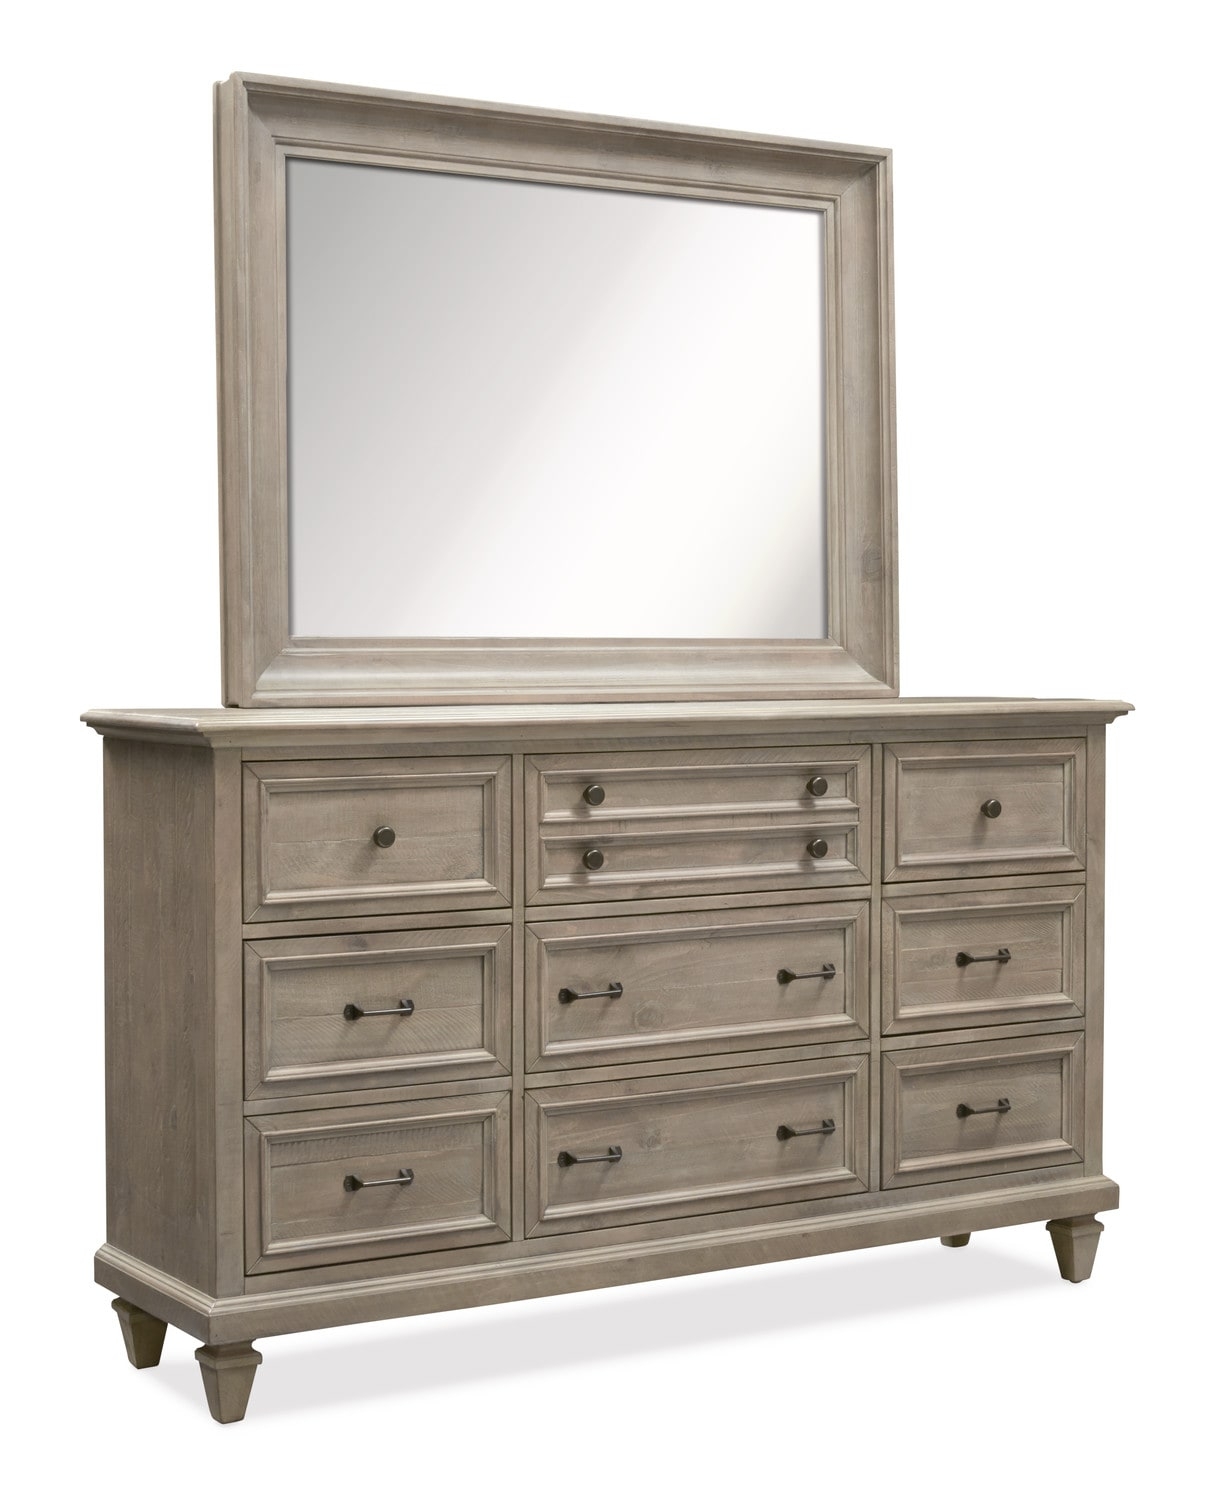 Bedroom Furniture - Harrison Dresser and Mirror